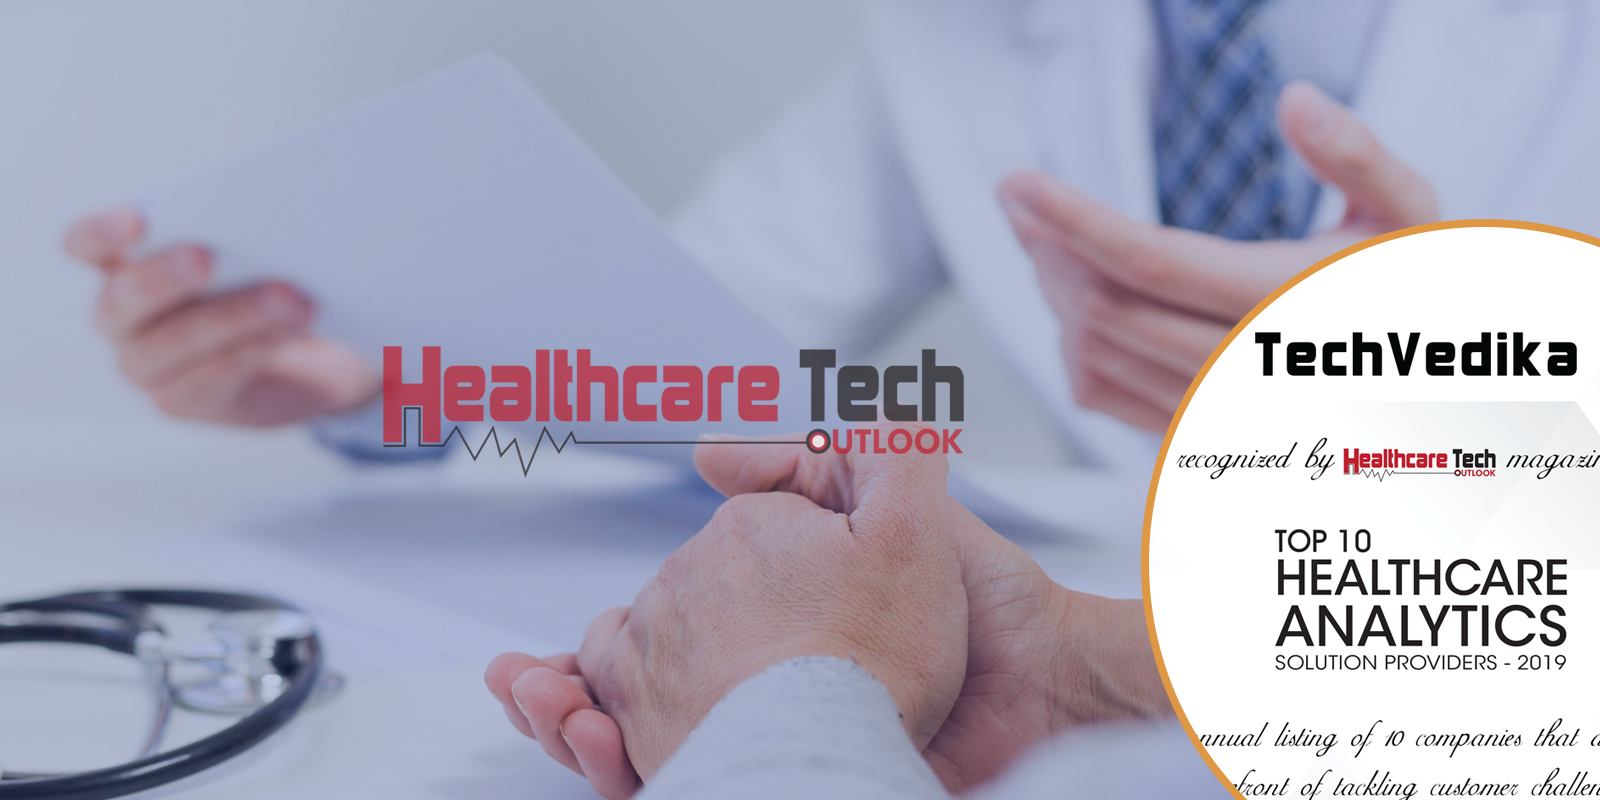 Healthcare Tech Outlook recognizes Tech Vedika as Top 10 Healthcare Analytics Solution Providers for 2019